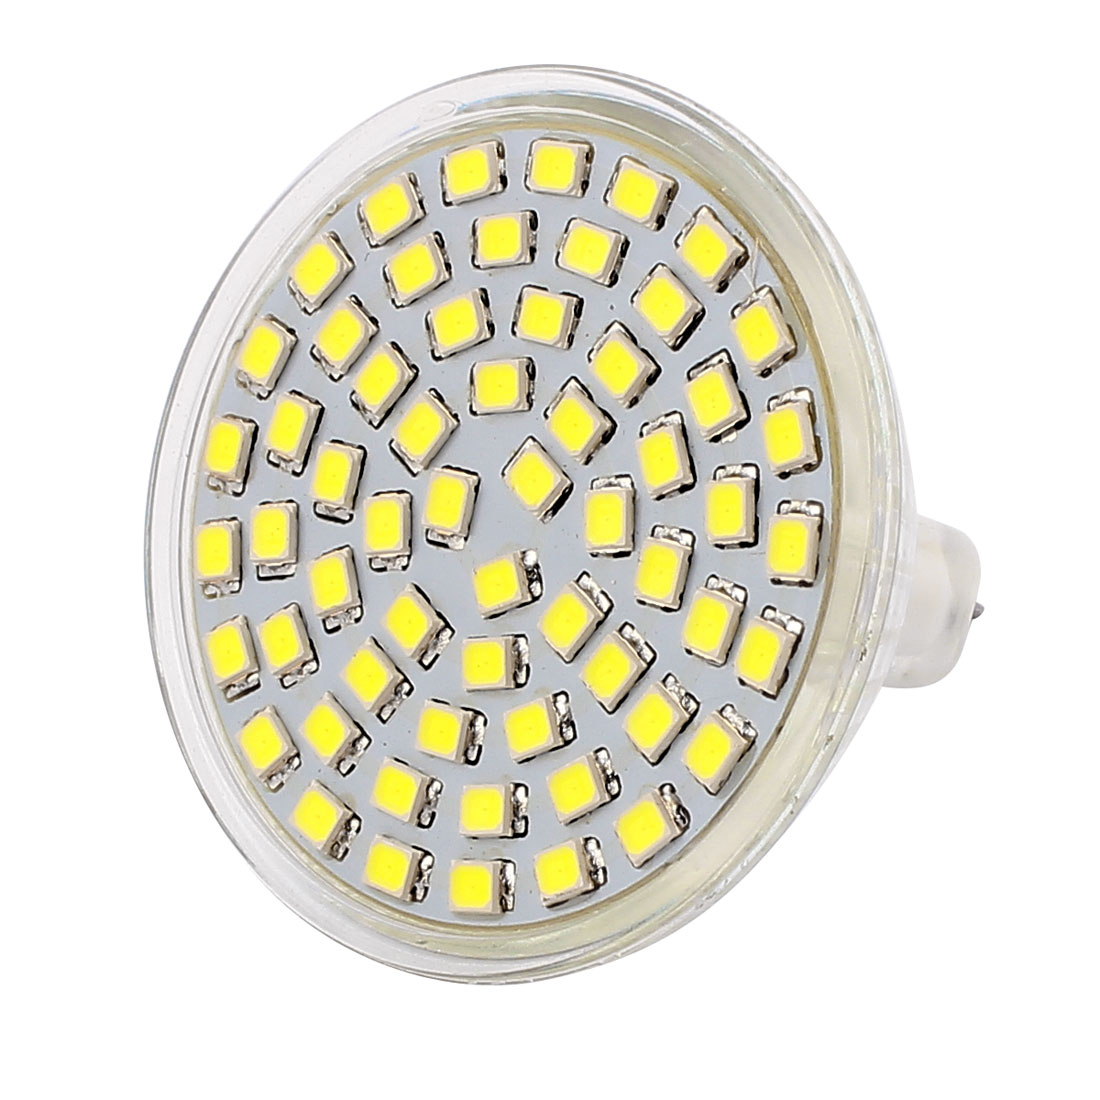 220V 6W MR16 2835 SMD 60 LEDs LED Bulb Light Spotlight Down Lamp Lighting White